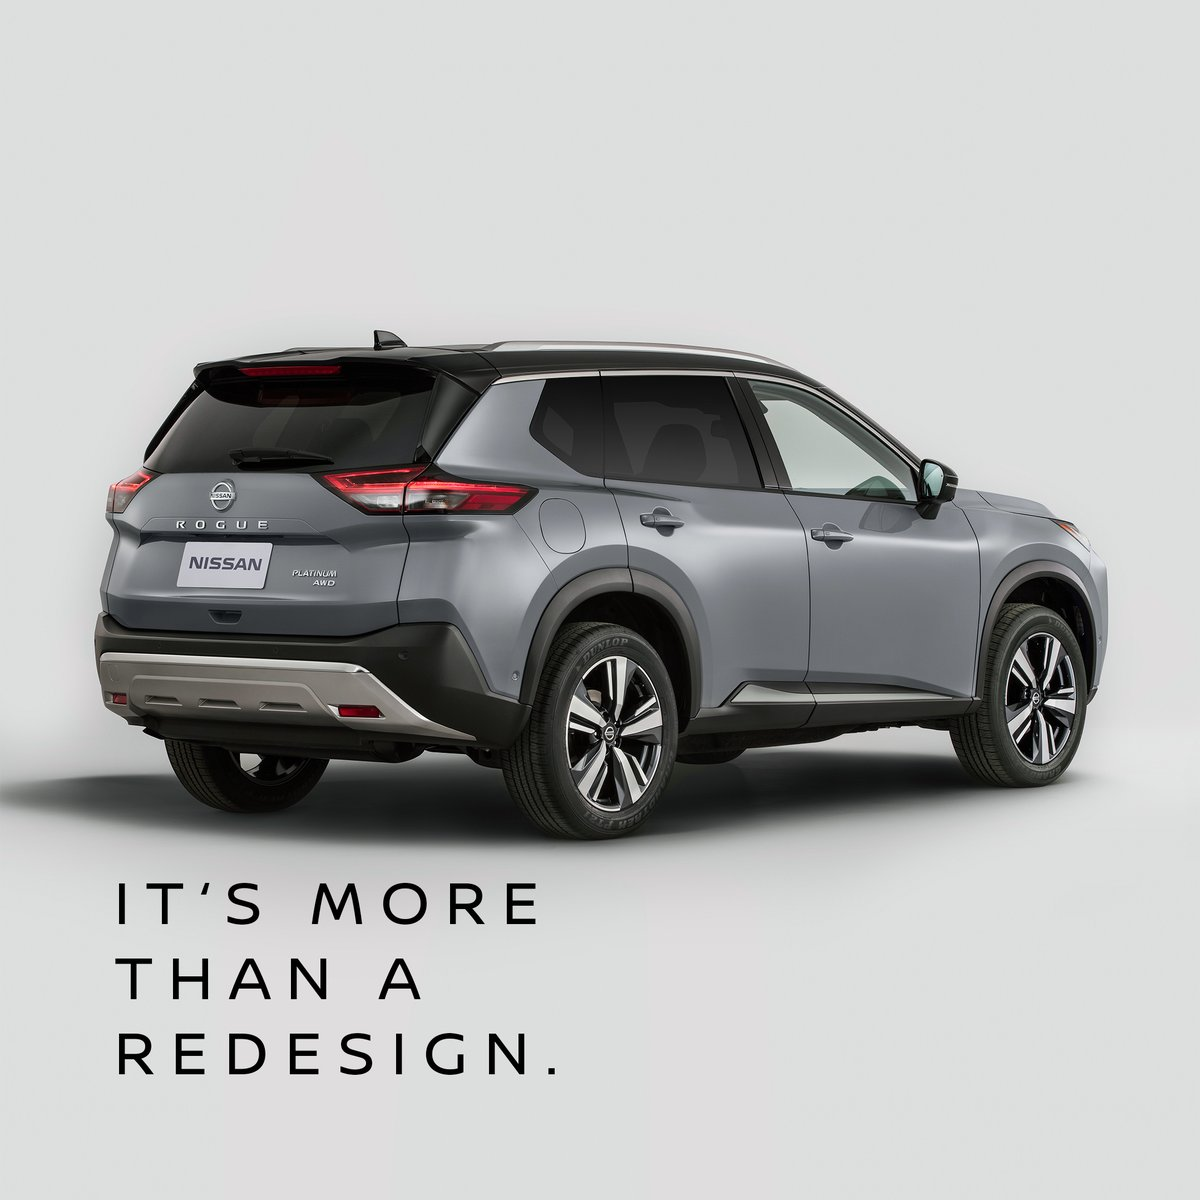 Visit us and check out the All-New-Rogue with new design and technology! #NissanRogue2021 #RogieGoneRogue #UniversalNissan